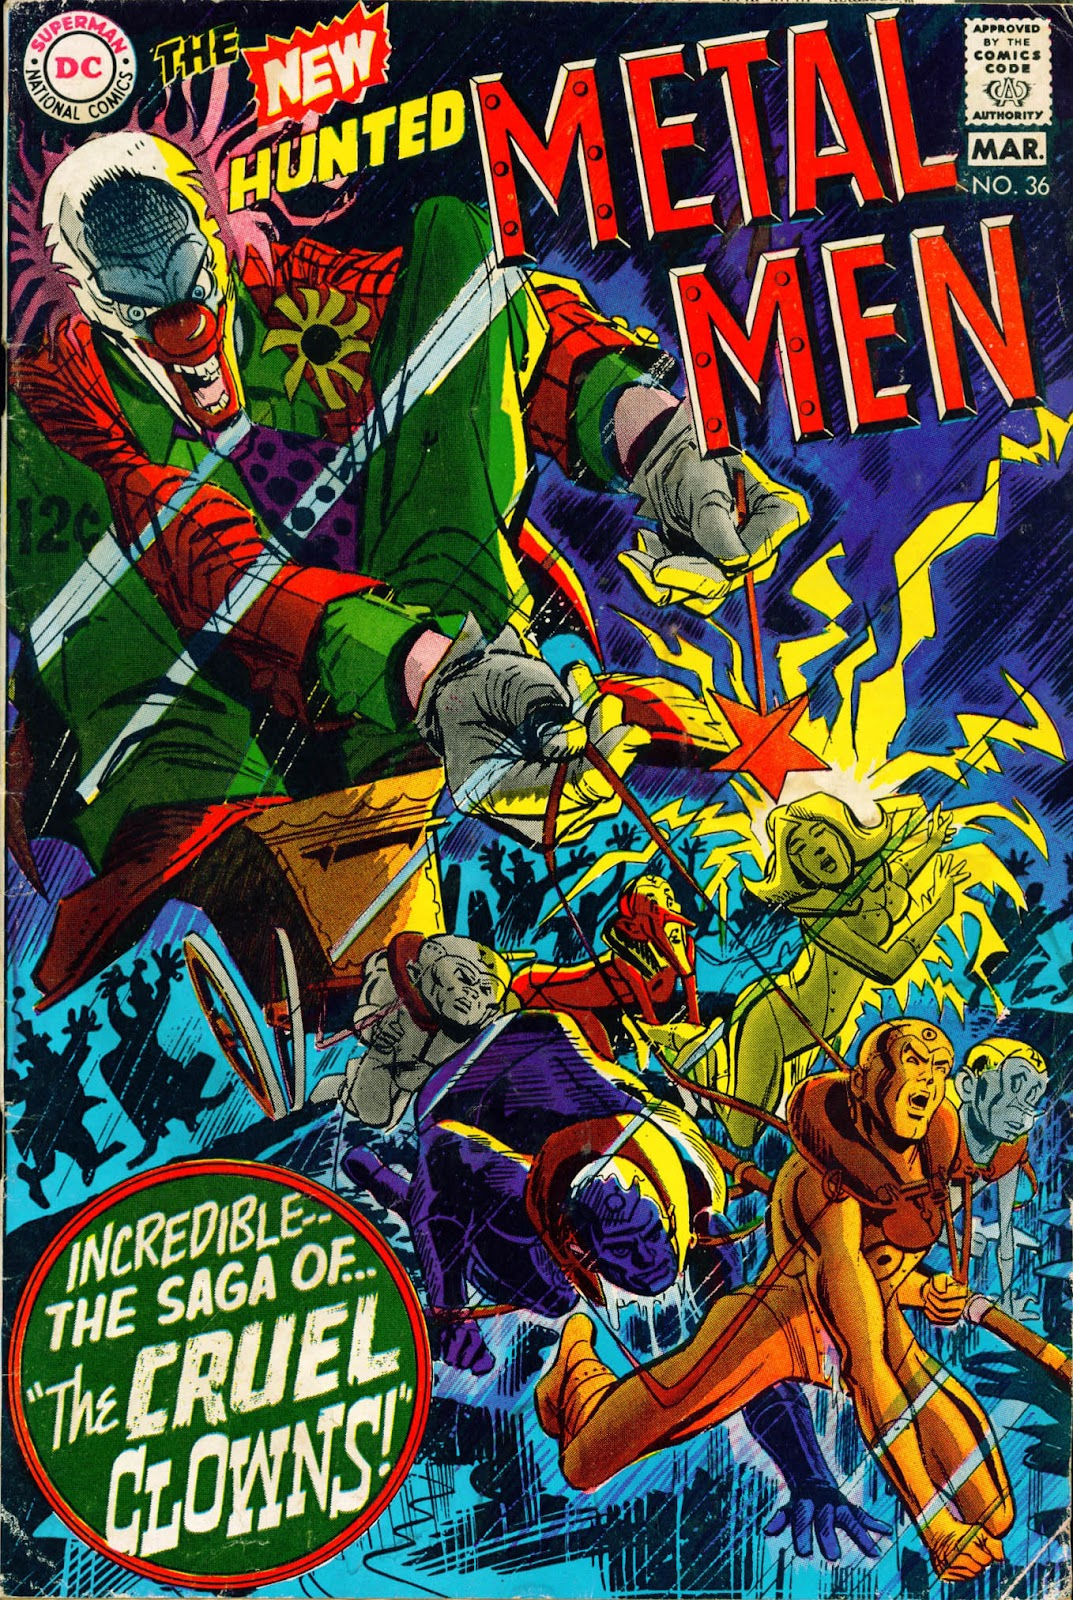 Metal Men (1963) issue 36 - Page 1